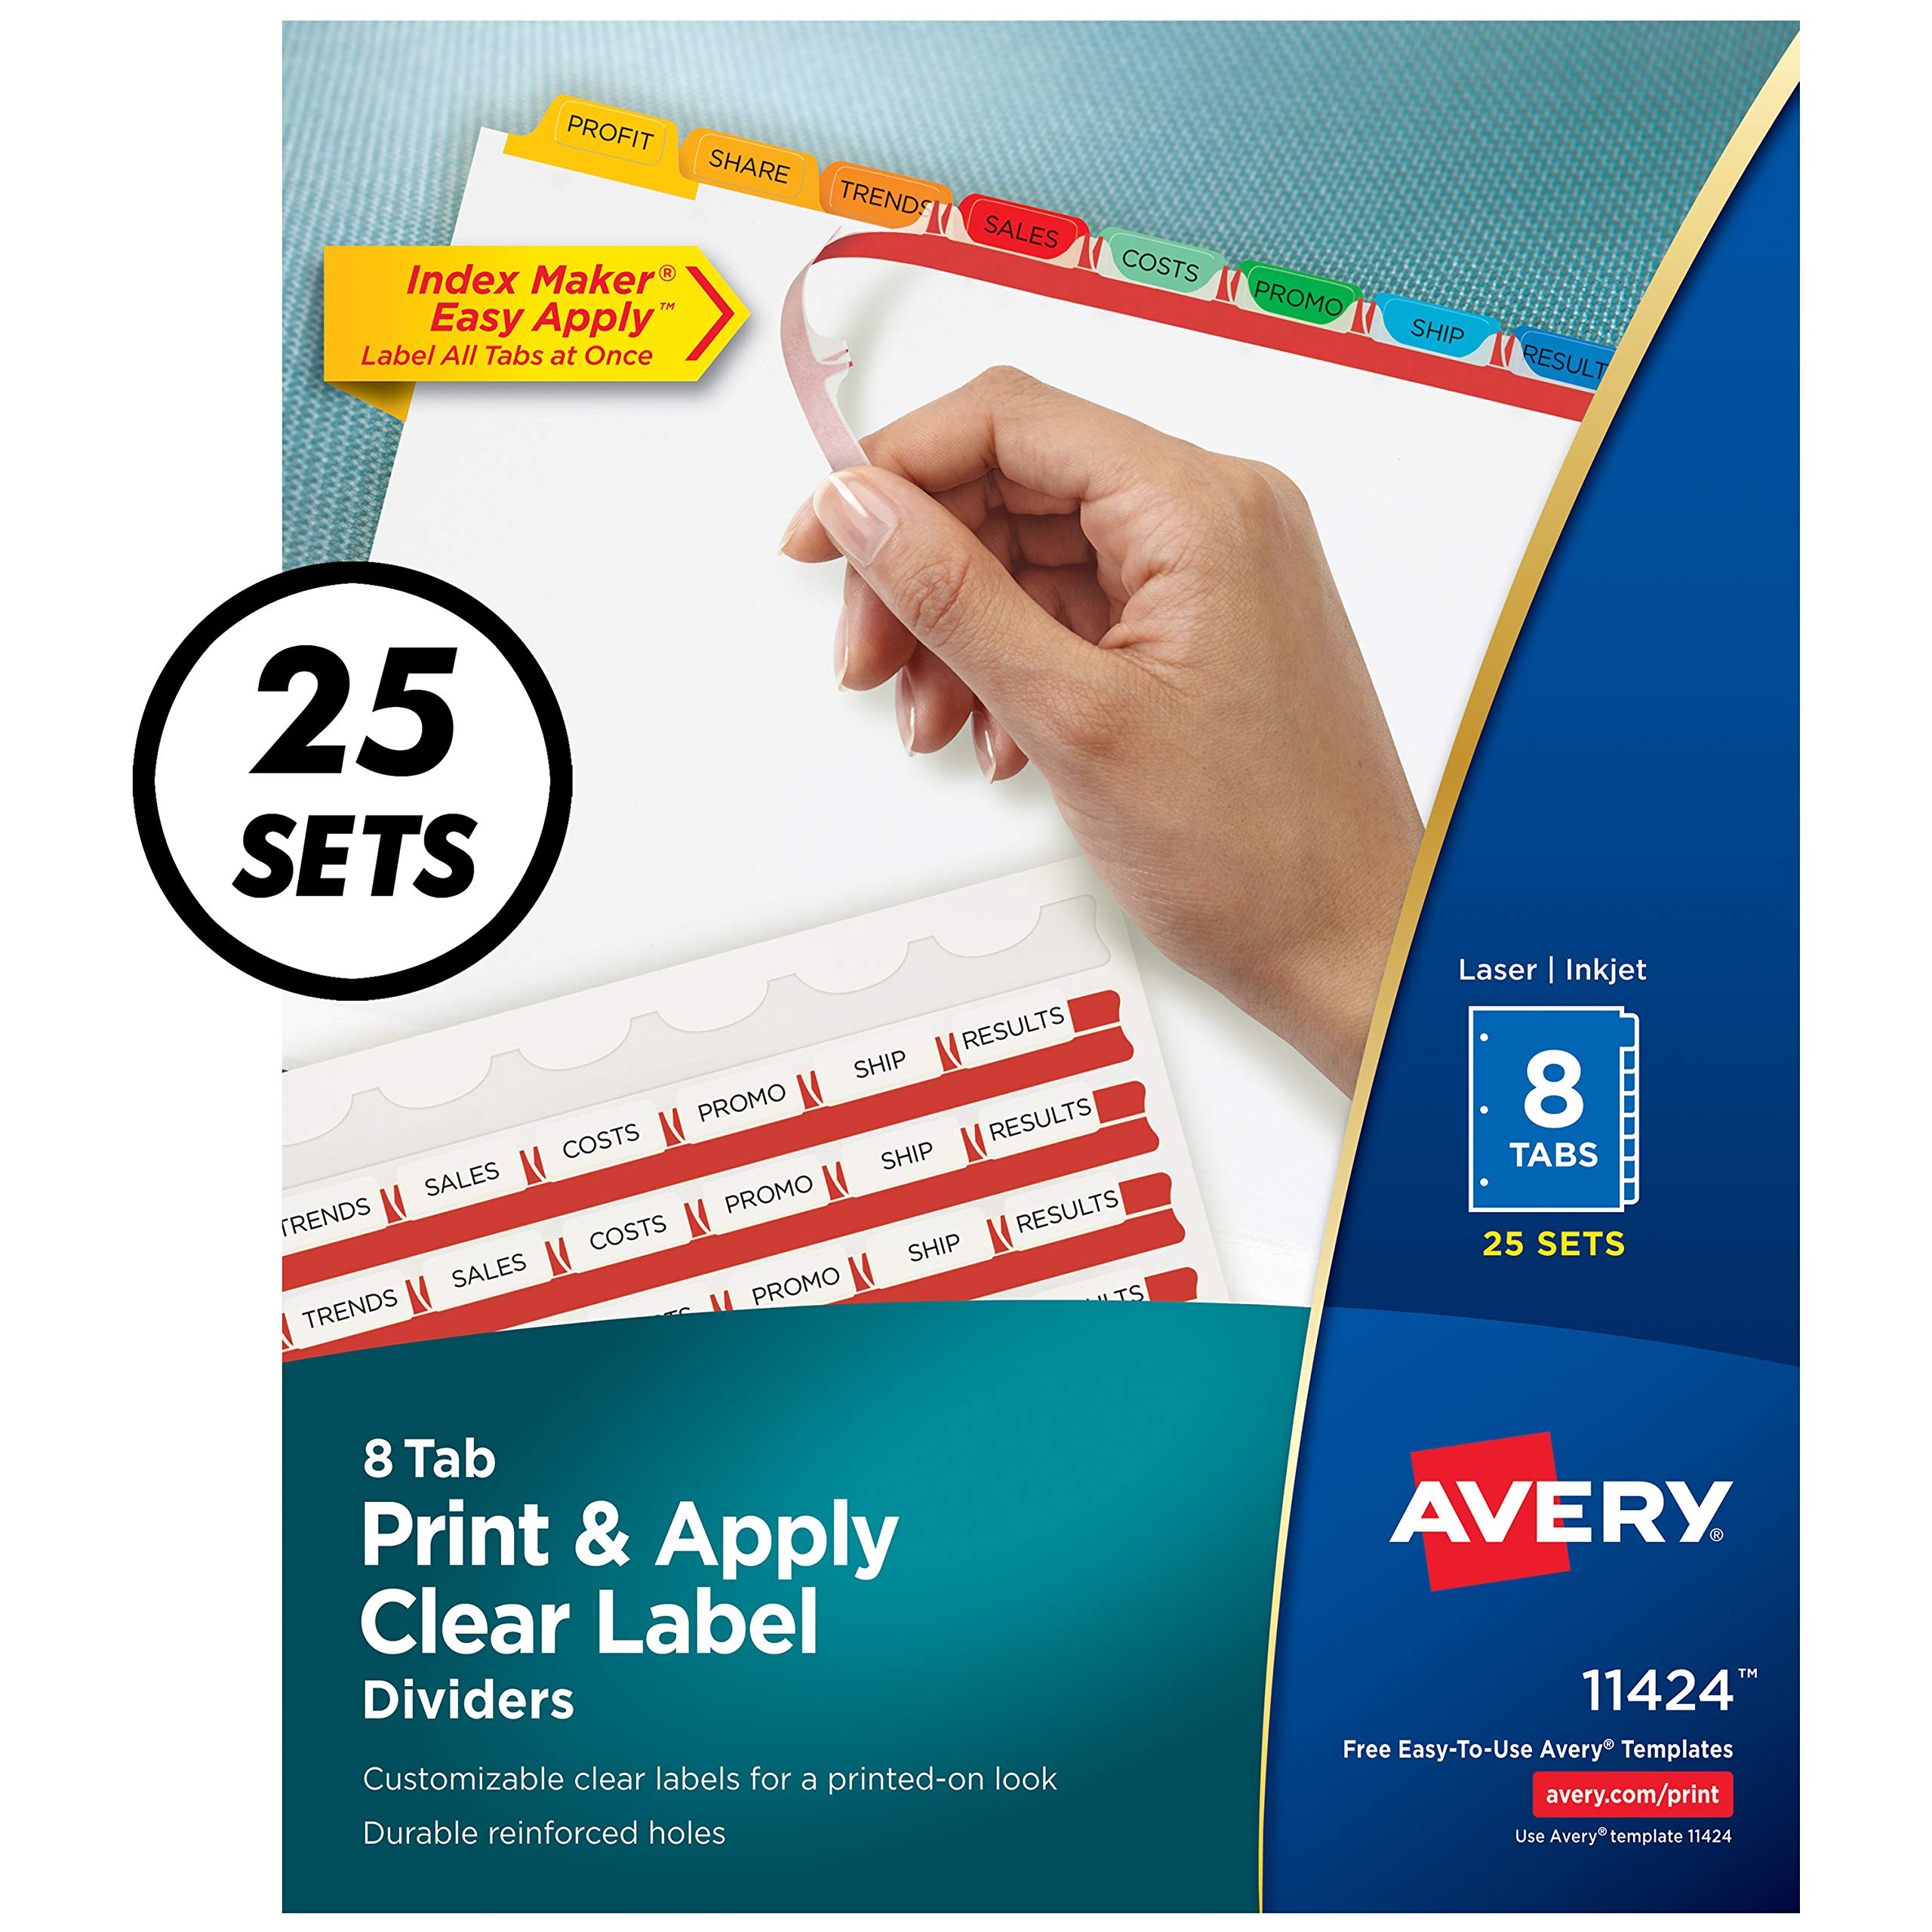 Avery 8-Tab Binder Dividers, Easy Print & Apply Clear Label Strip, Index Maker, Multicolor Tabs, 25 Sets (11424) by Avery